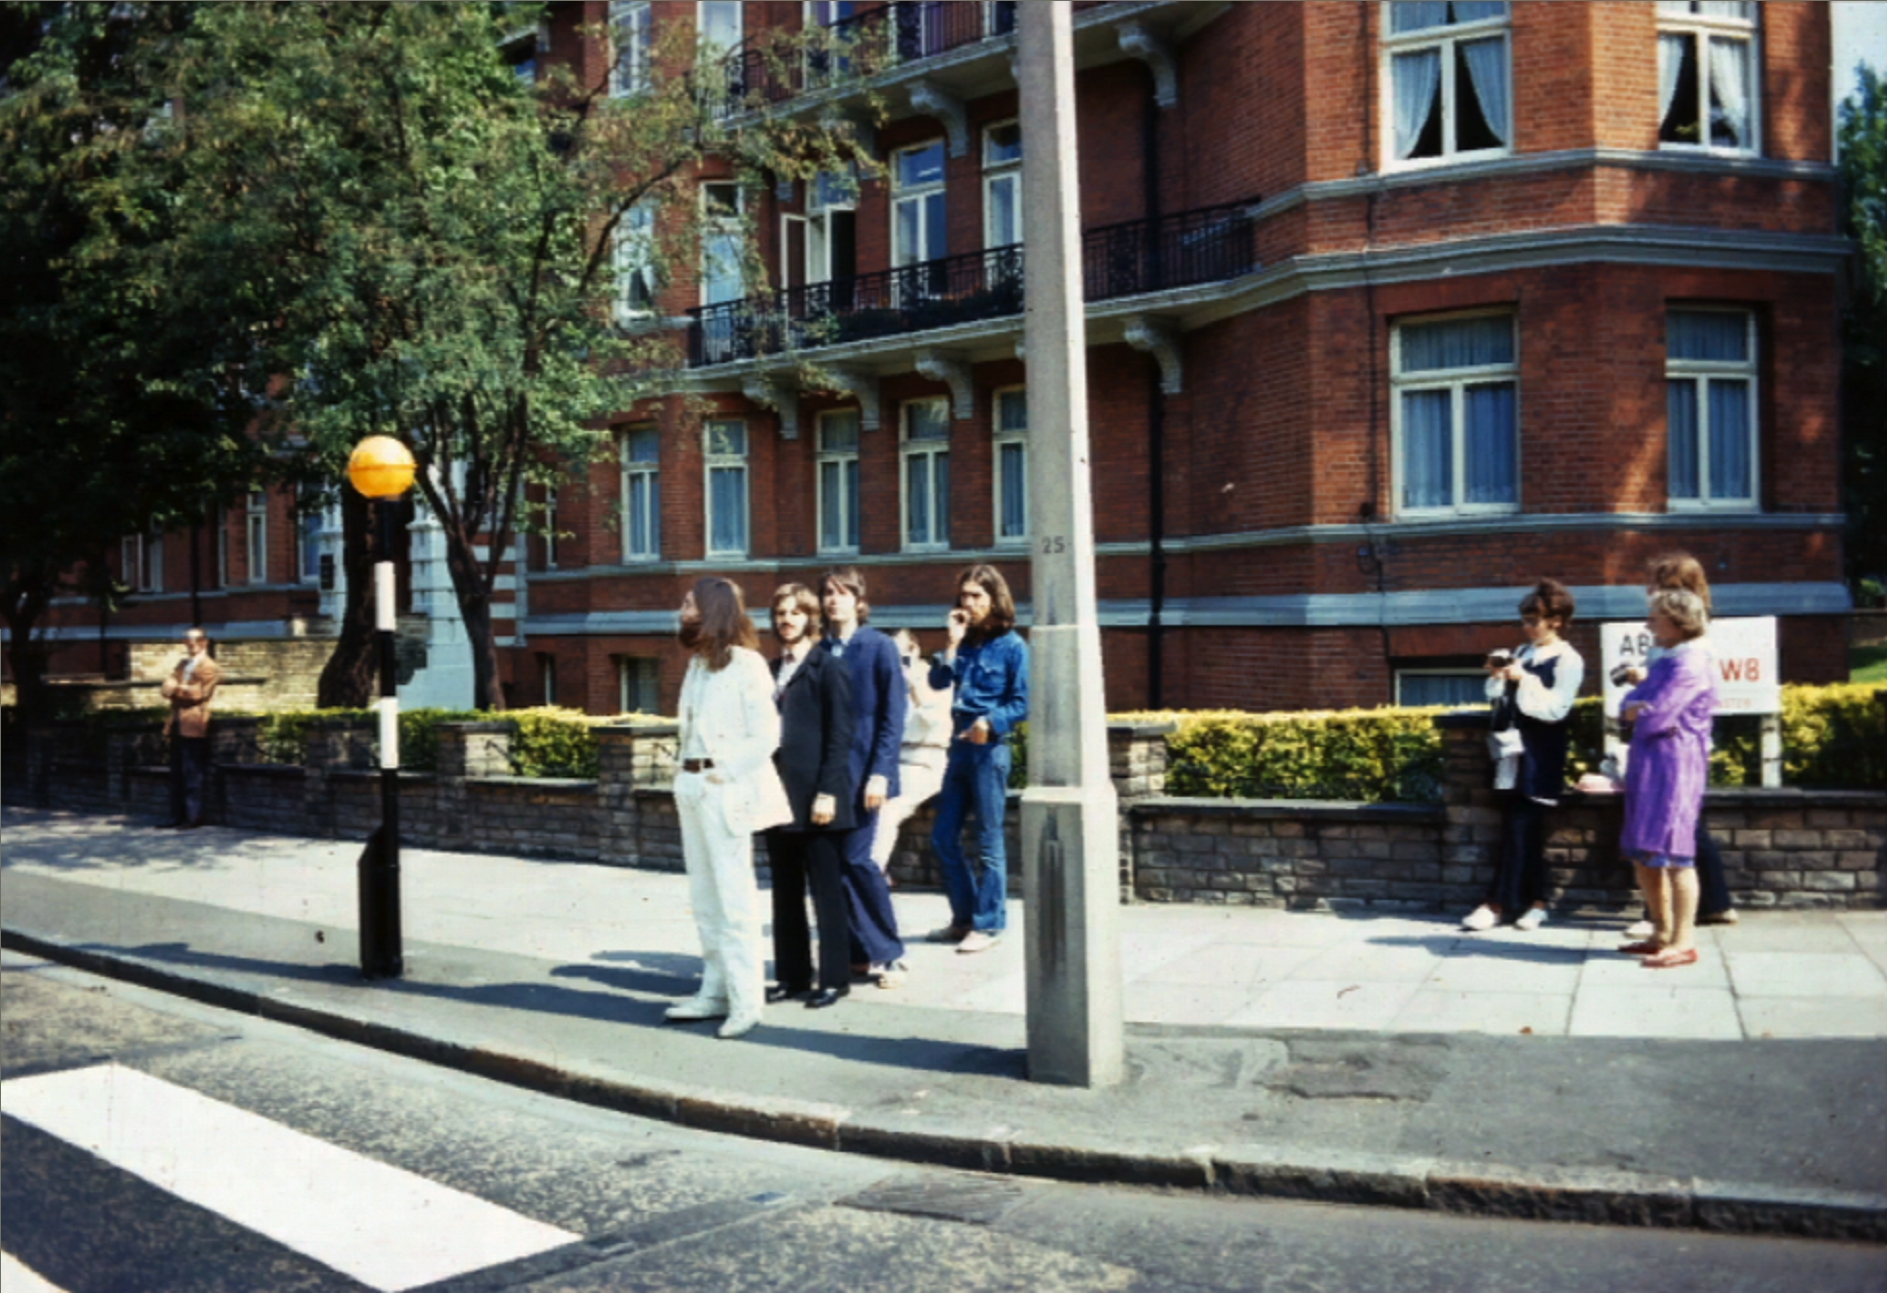 Picture making history the shot before the beatles abbey road from pratik biocorpaavc Choice Image